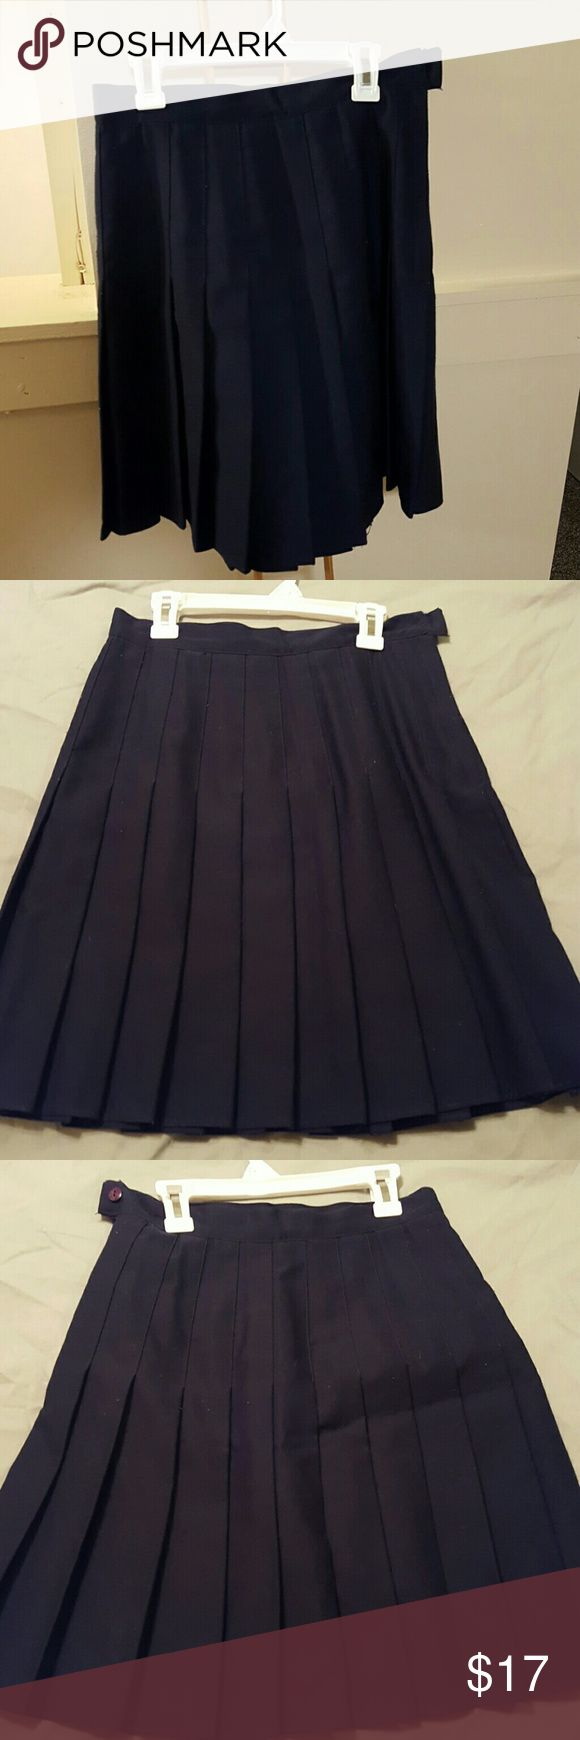 Navy blue pleated skirt Navy blue skirt sits just about knee length. Great for the office or as a uniform. Like new condition, side zipper. 35th & 10th Skirts